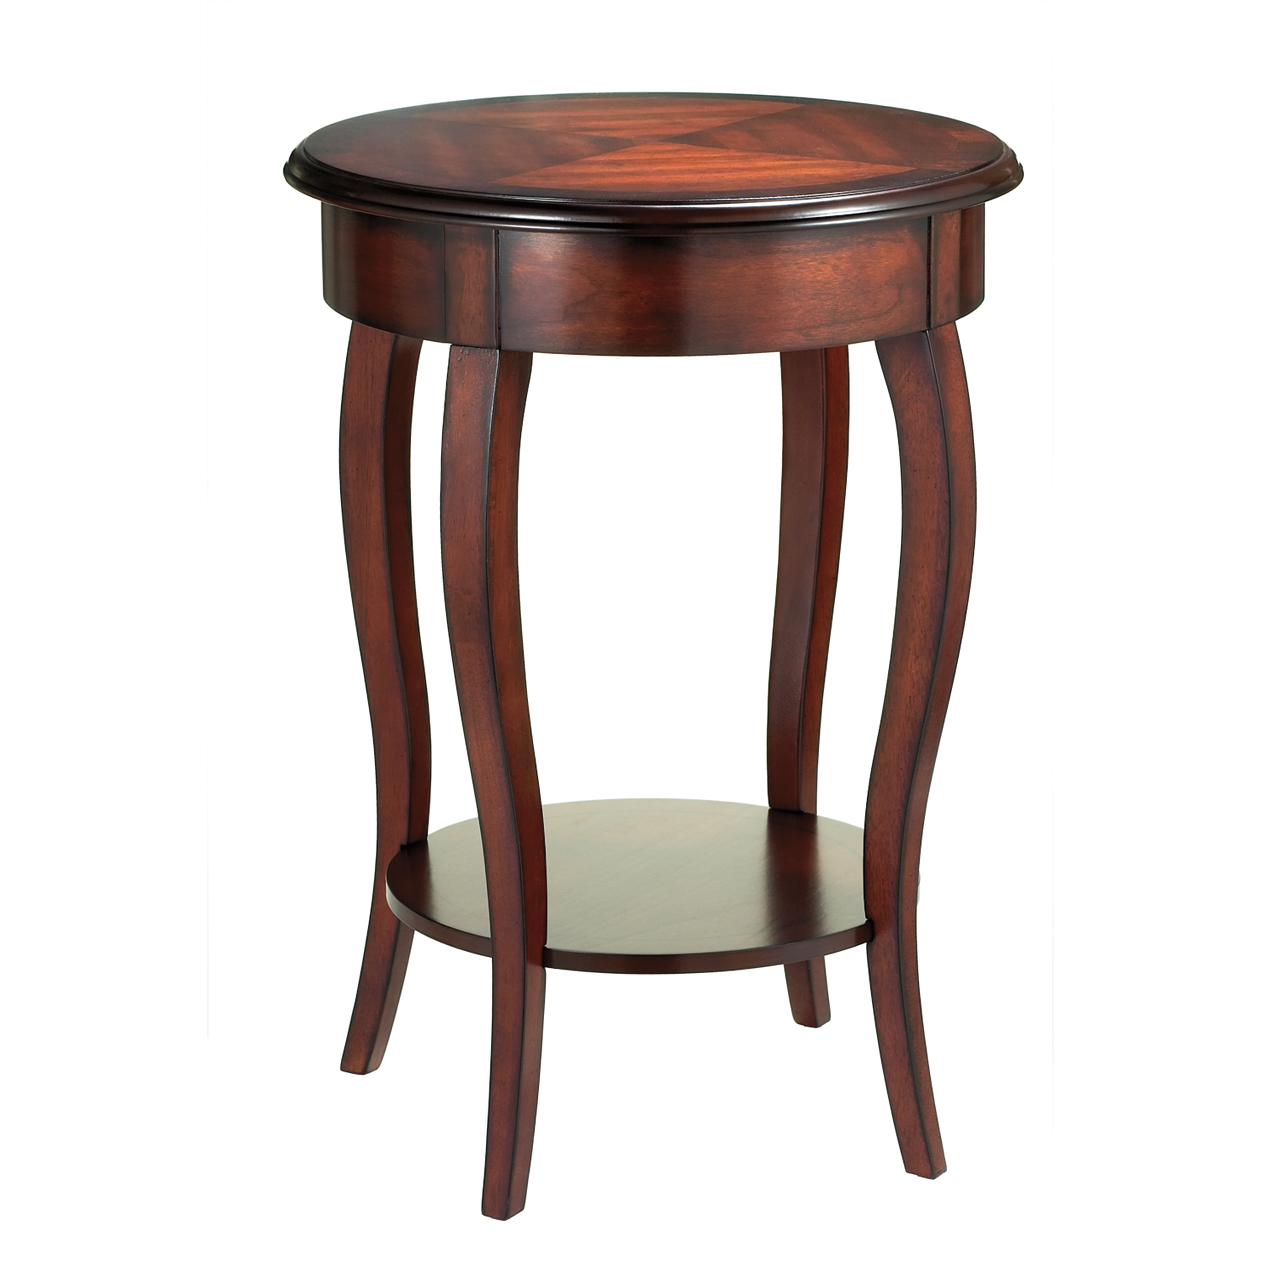 ashford side table bombay orange accent telephone tables outside covers contemporary chairs small counter height sets shallow hall cupboard extra wide carpet threshold strip